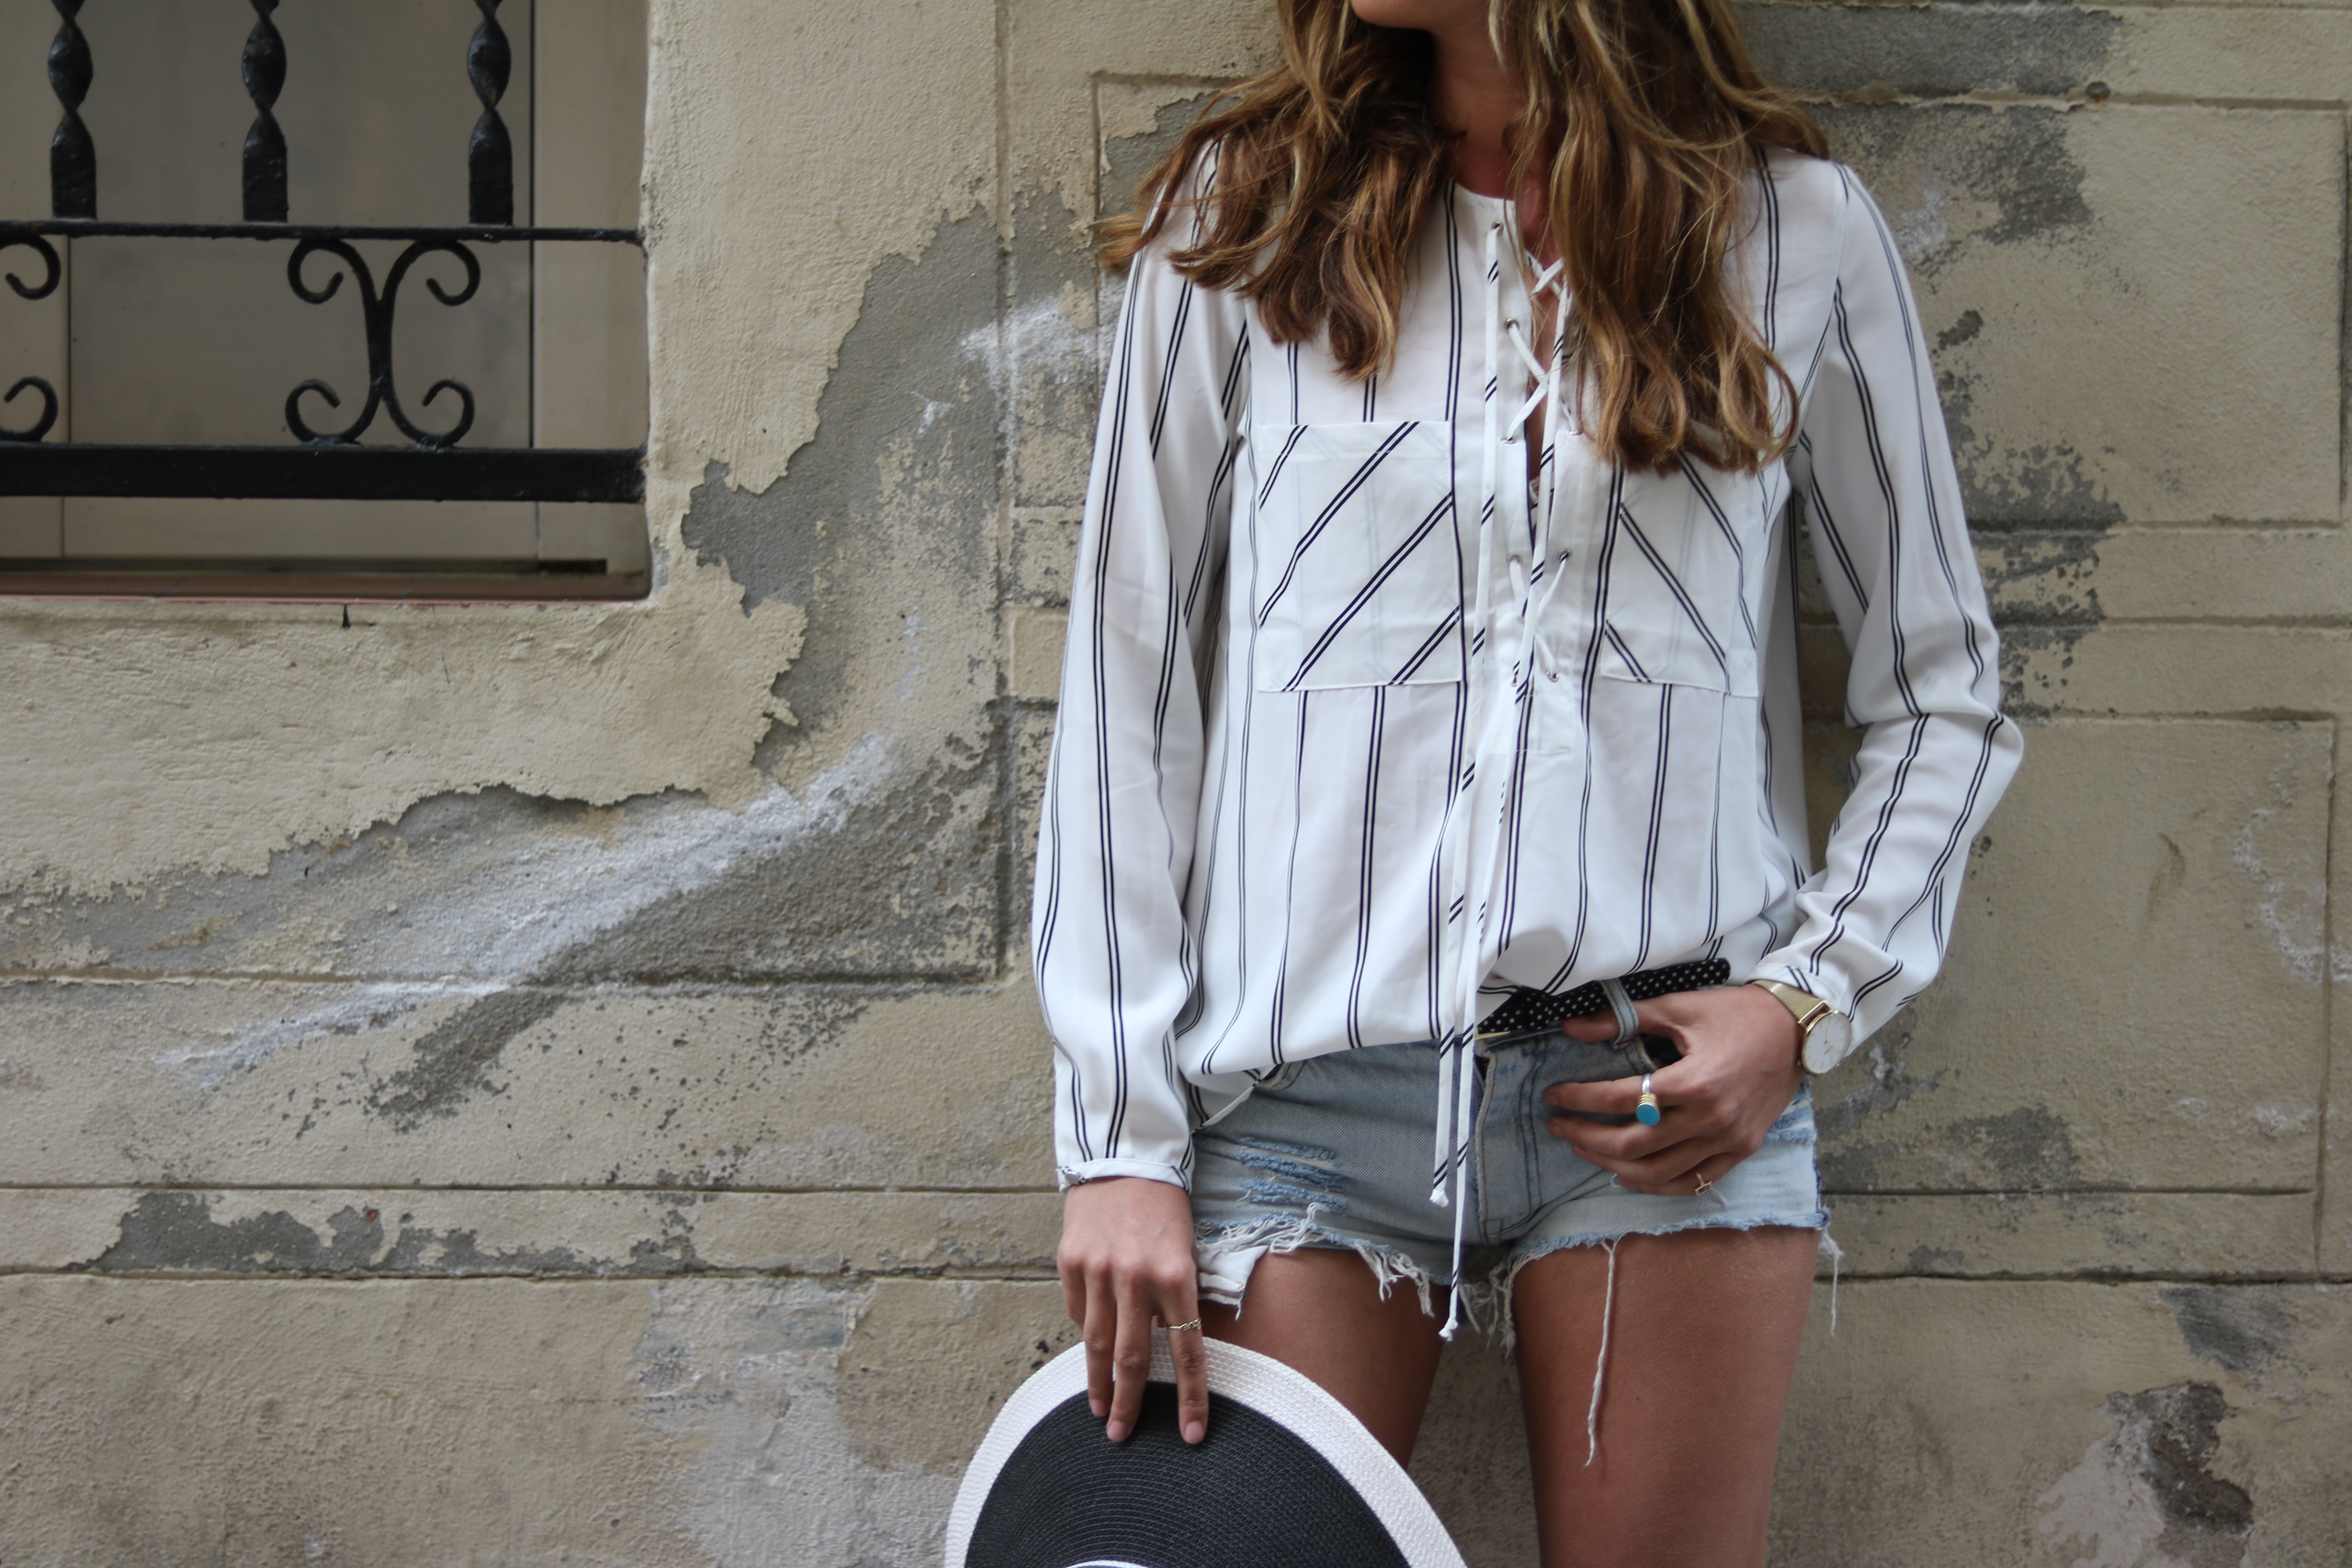 Fashionblogger in Barcelona - WORDS THROUGH THE EYES